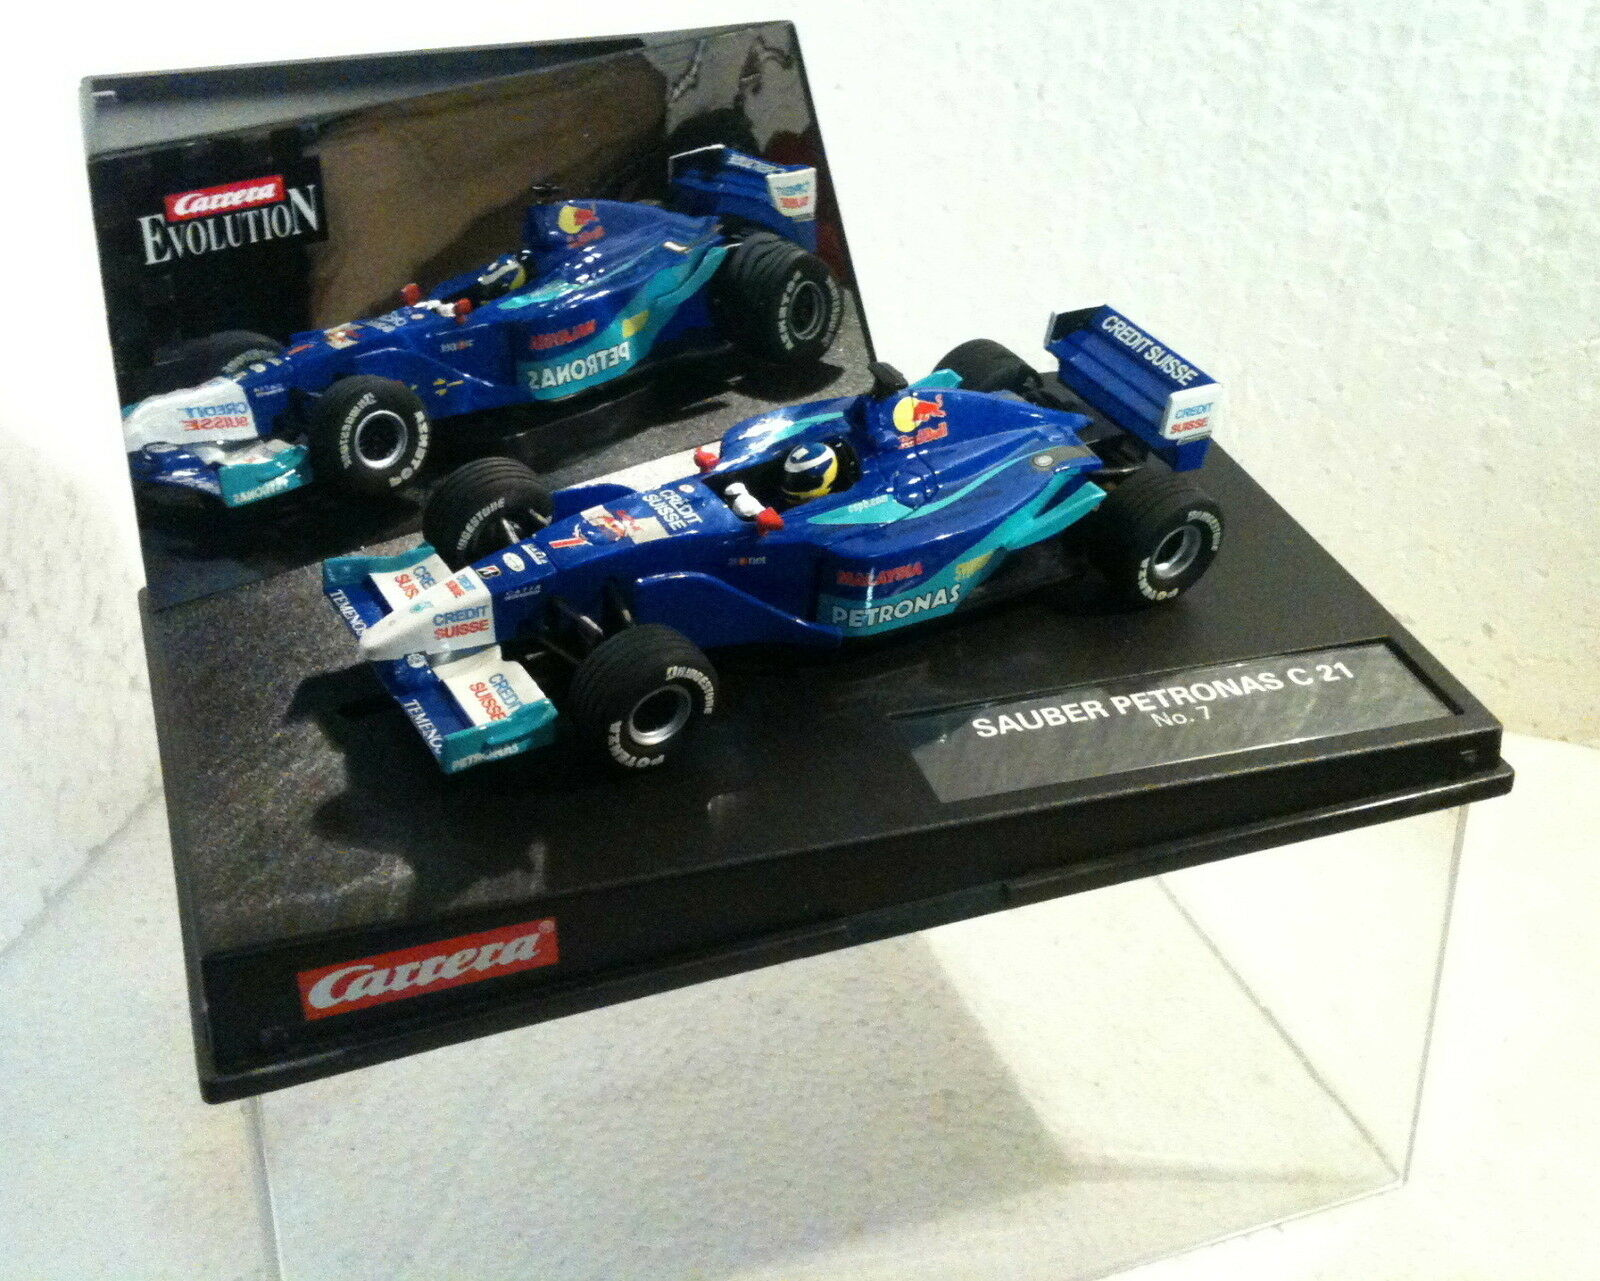 Qq 25459 CARRERA EVOLUTION SAUBER PETRONAS C 21   7